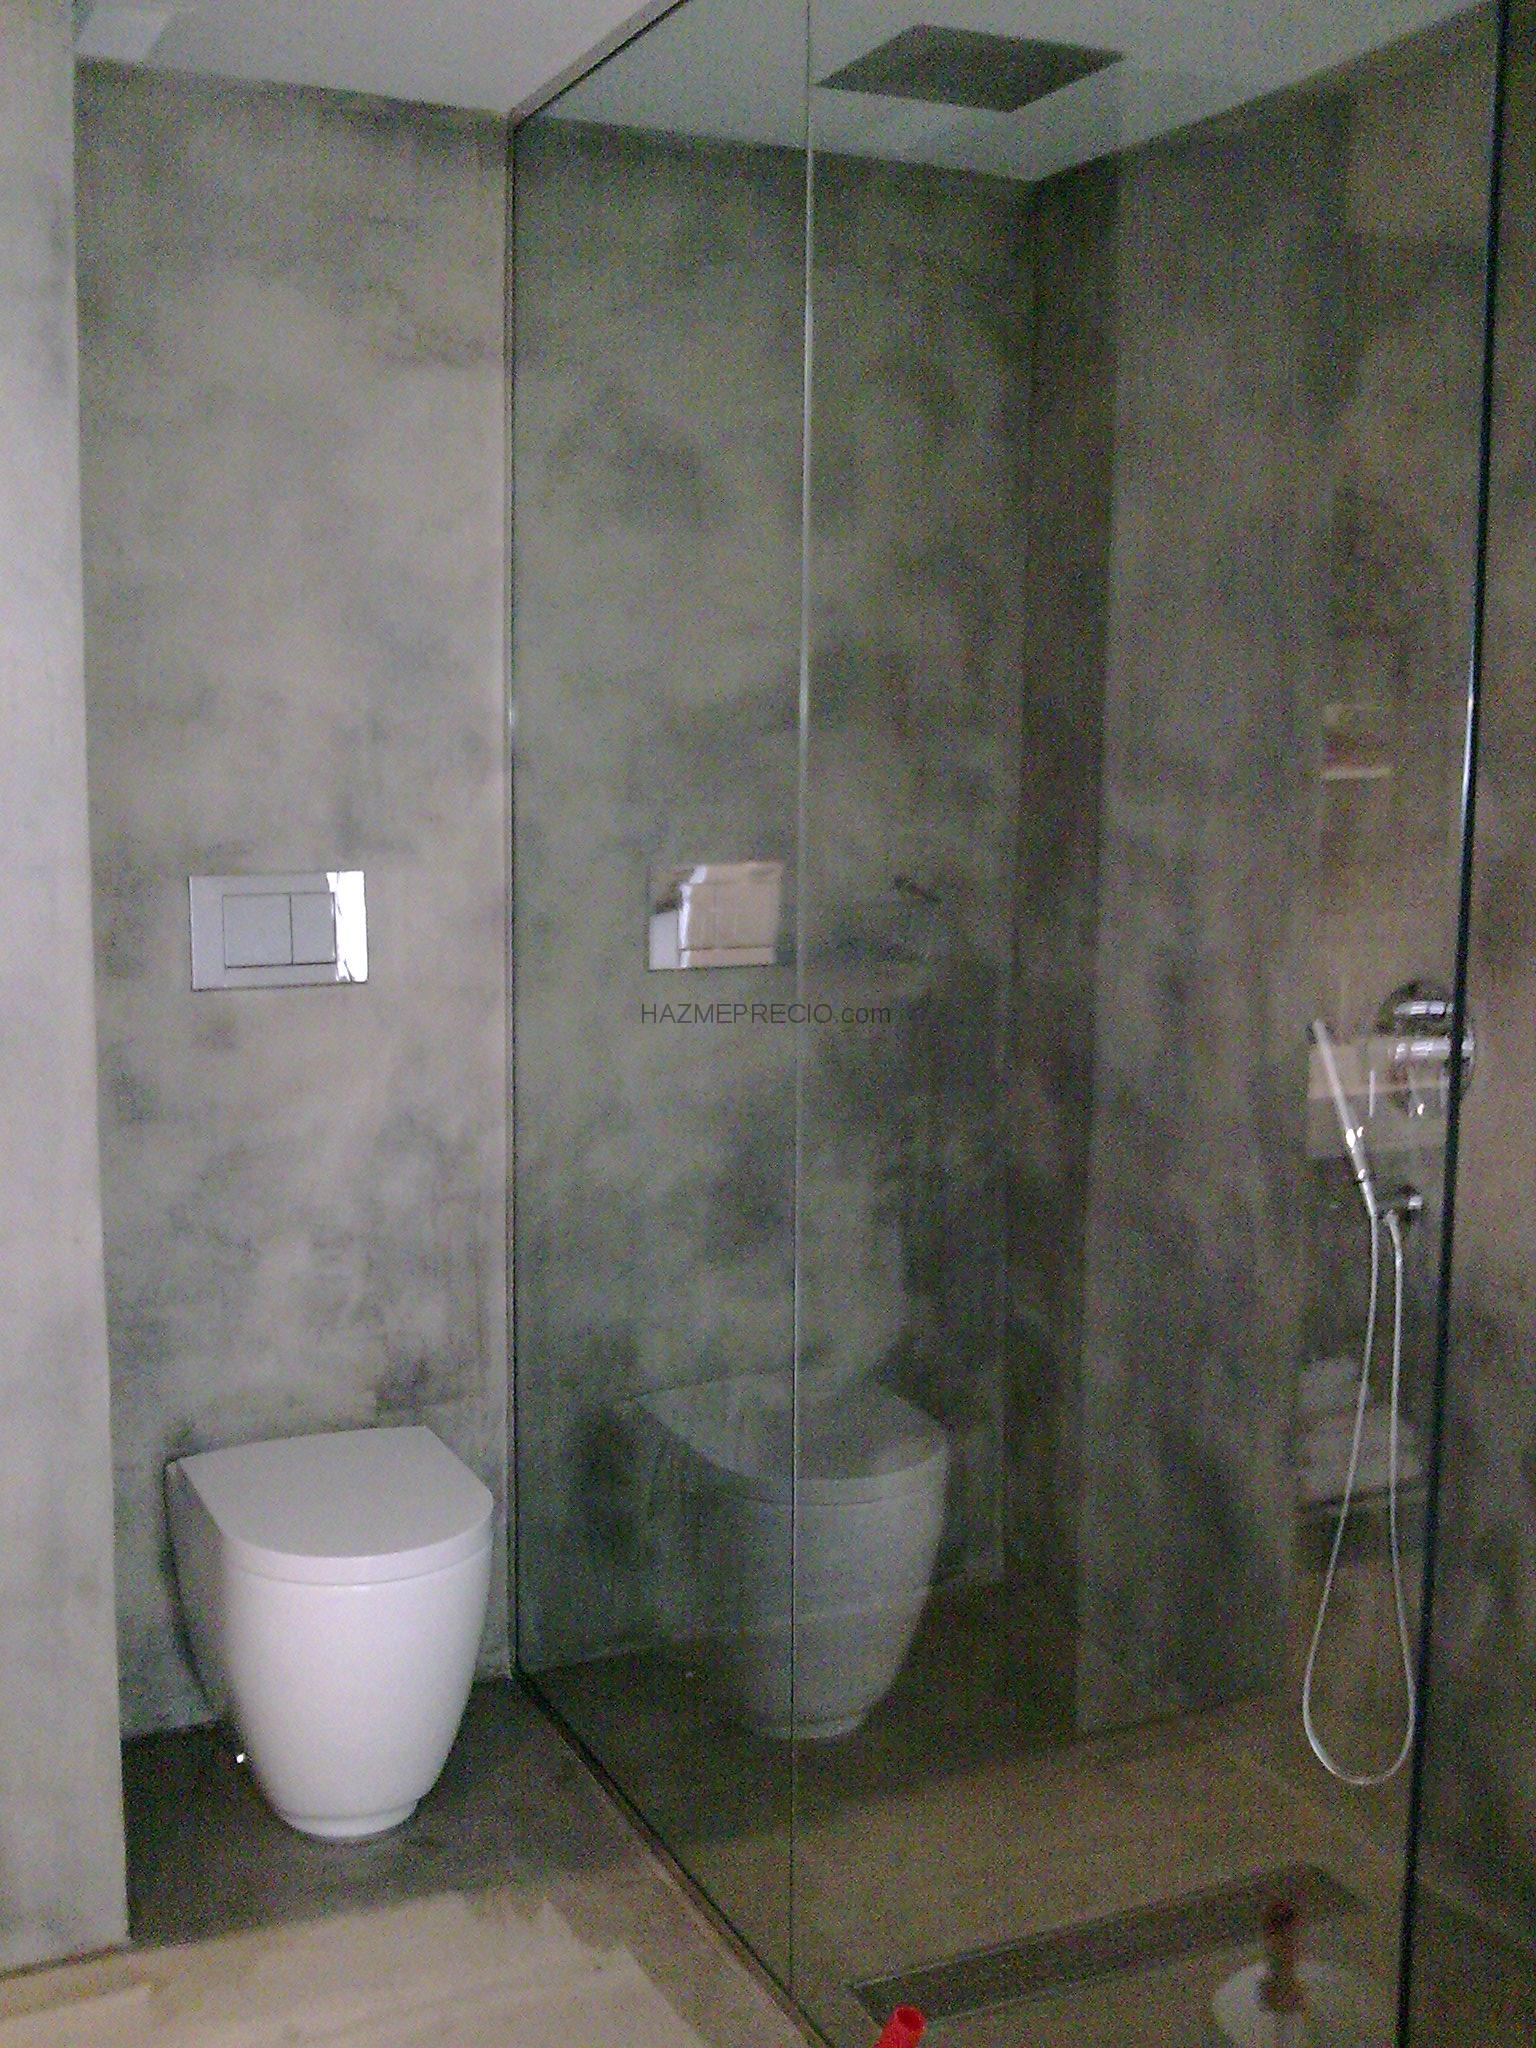 Baño Con Microcemento:Baño En Microcemento Suelo En Laminado 100 Pictures to pin on